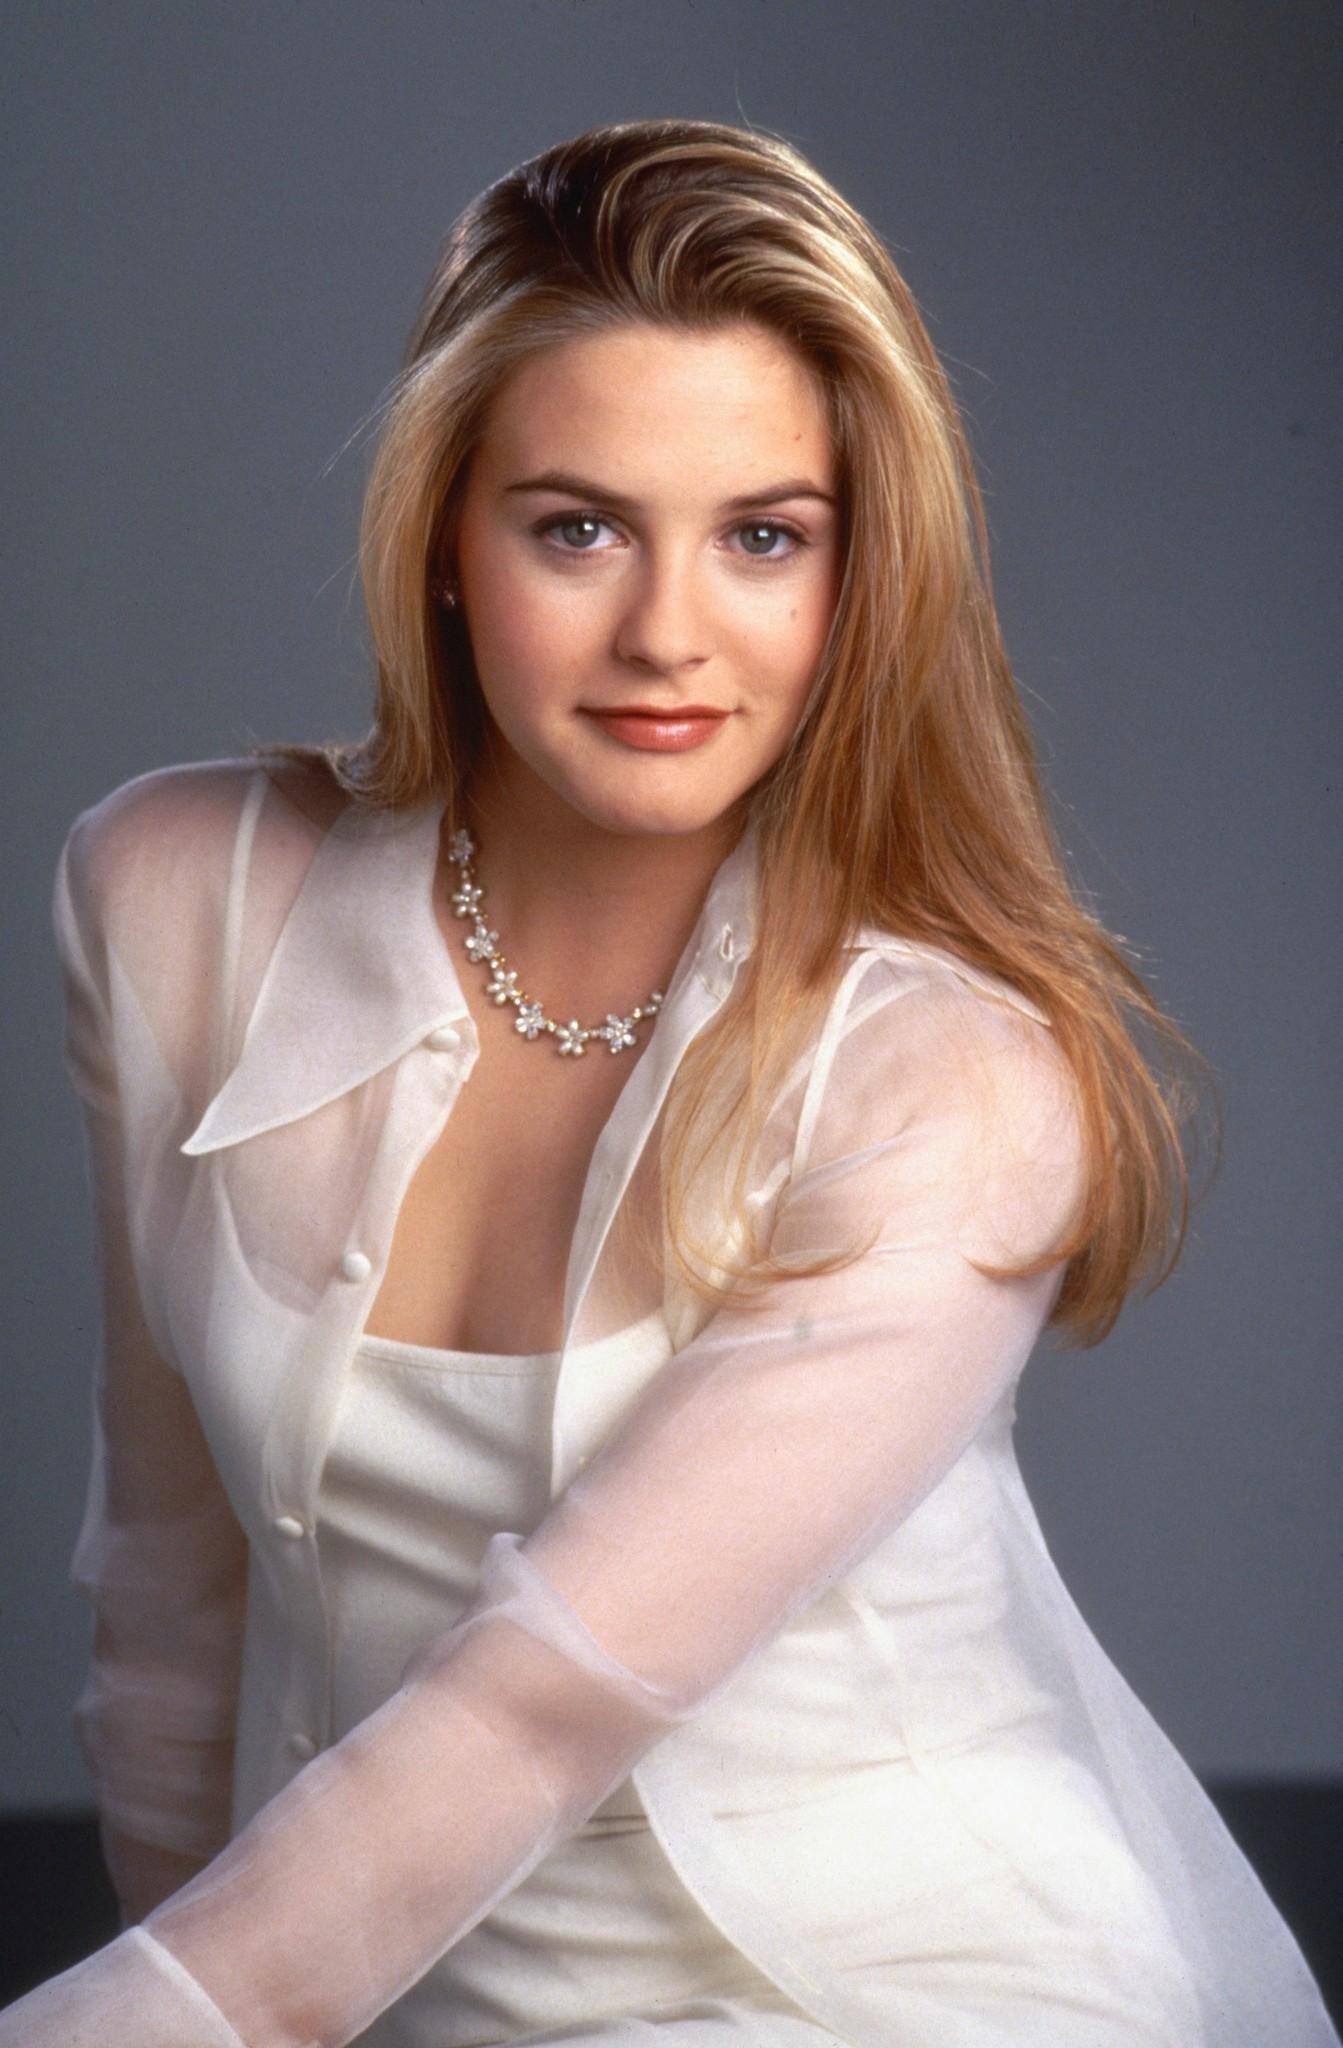 Alicia Silverstone Clueless HD Wallpaper, Backgrounds Image